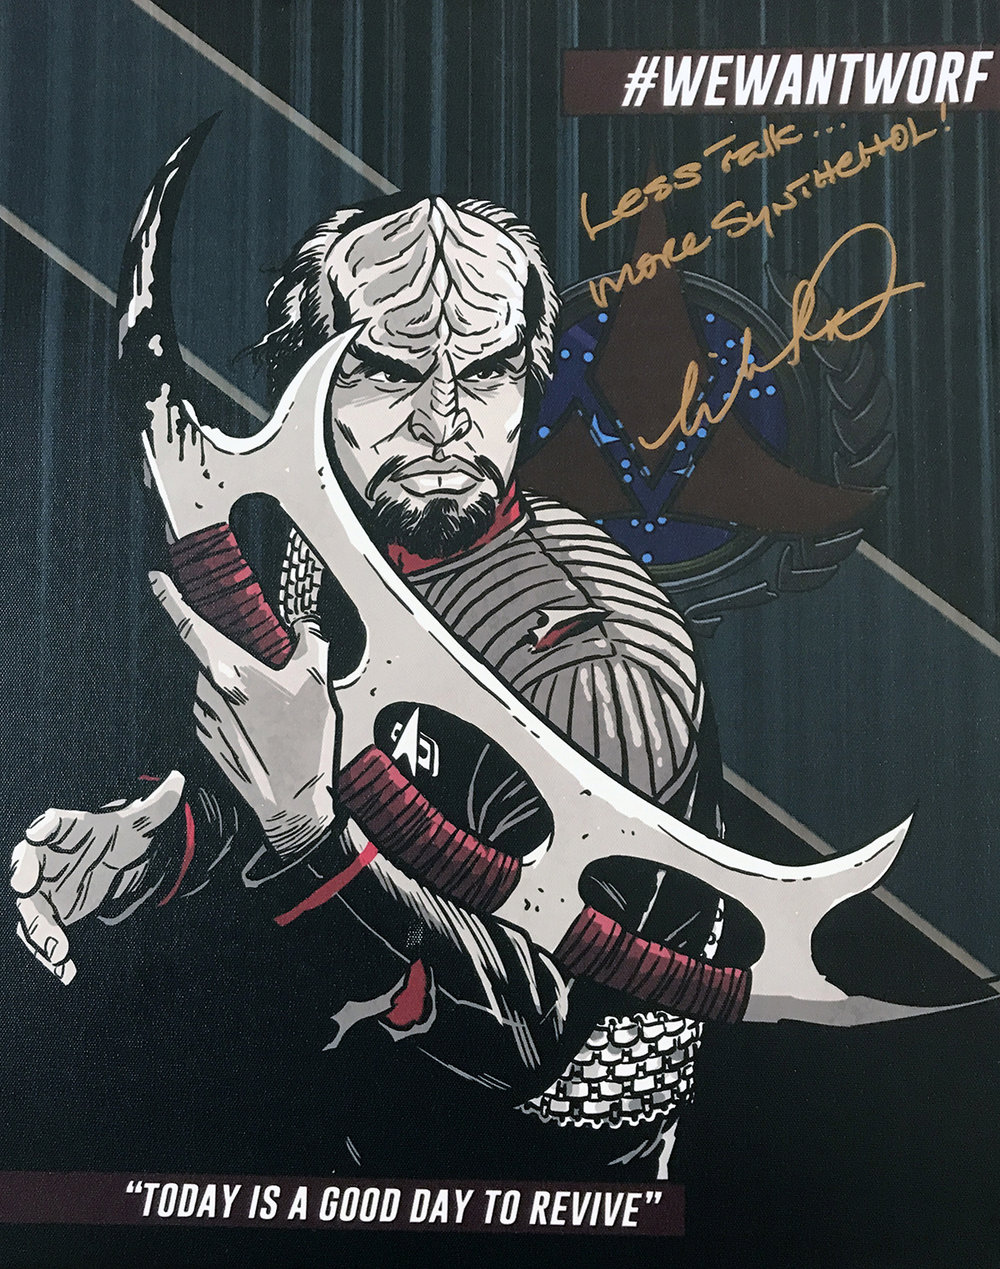 worf-auto-canvas-web.jpg